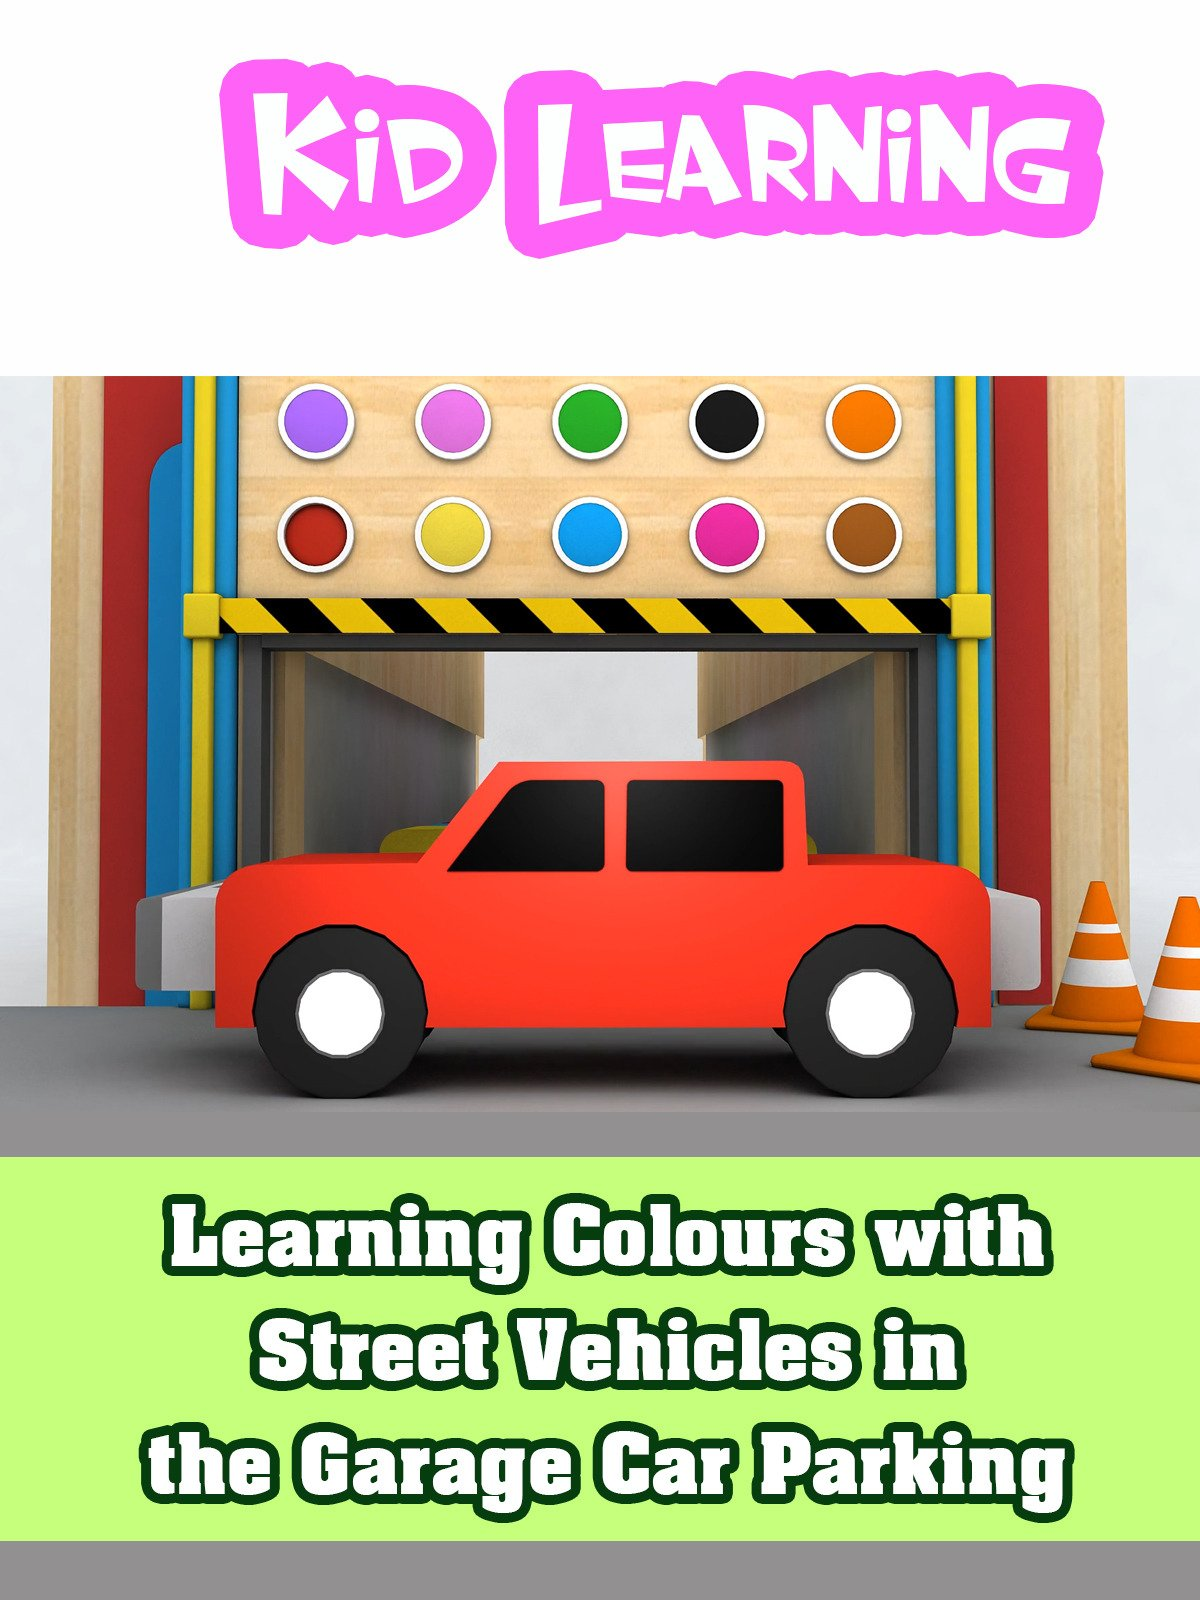 Learning Colours with Street Vehicles in the Garage Car Parking on Amazon Prime Video UK